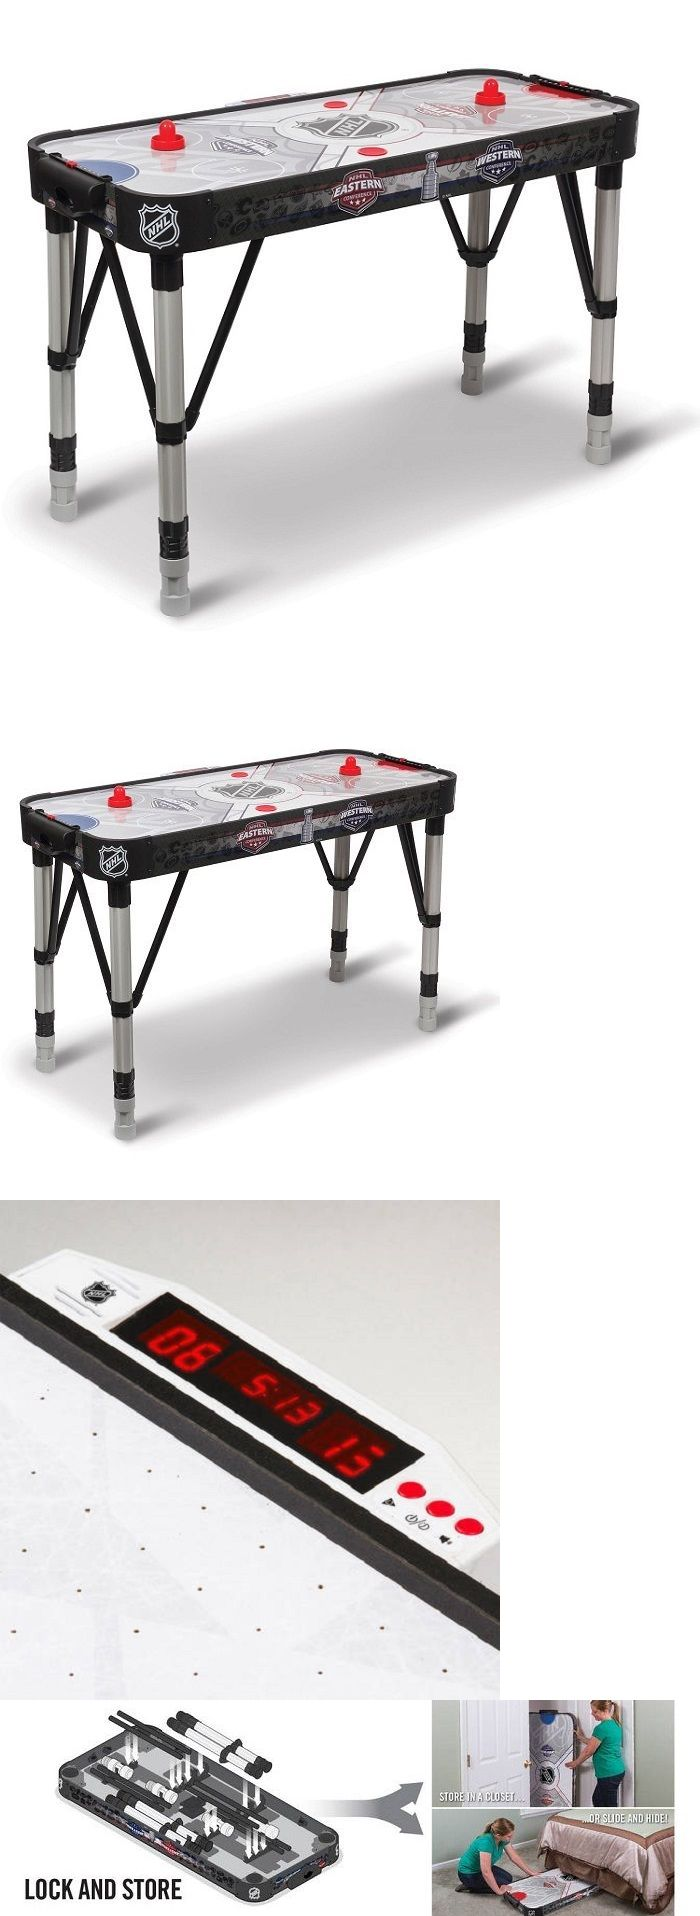 Air Hockey 36275: Air Hockey Table Nhl Air Powered Kids Led Scoring Sound  Adjustable 54Inch